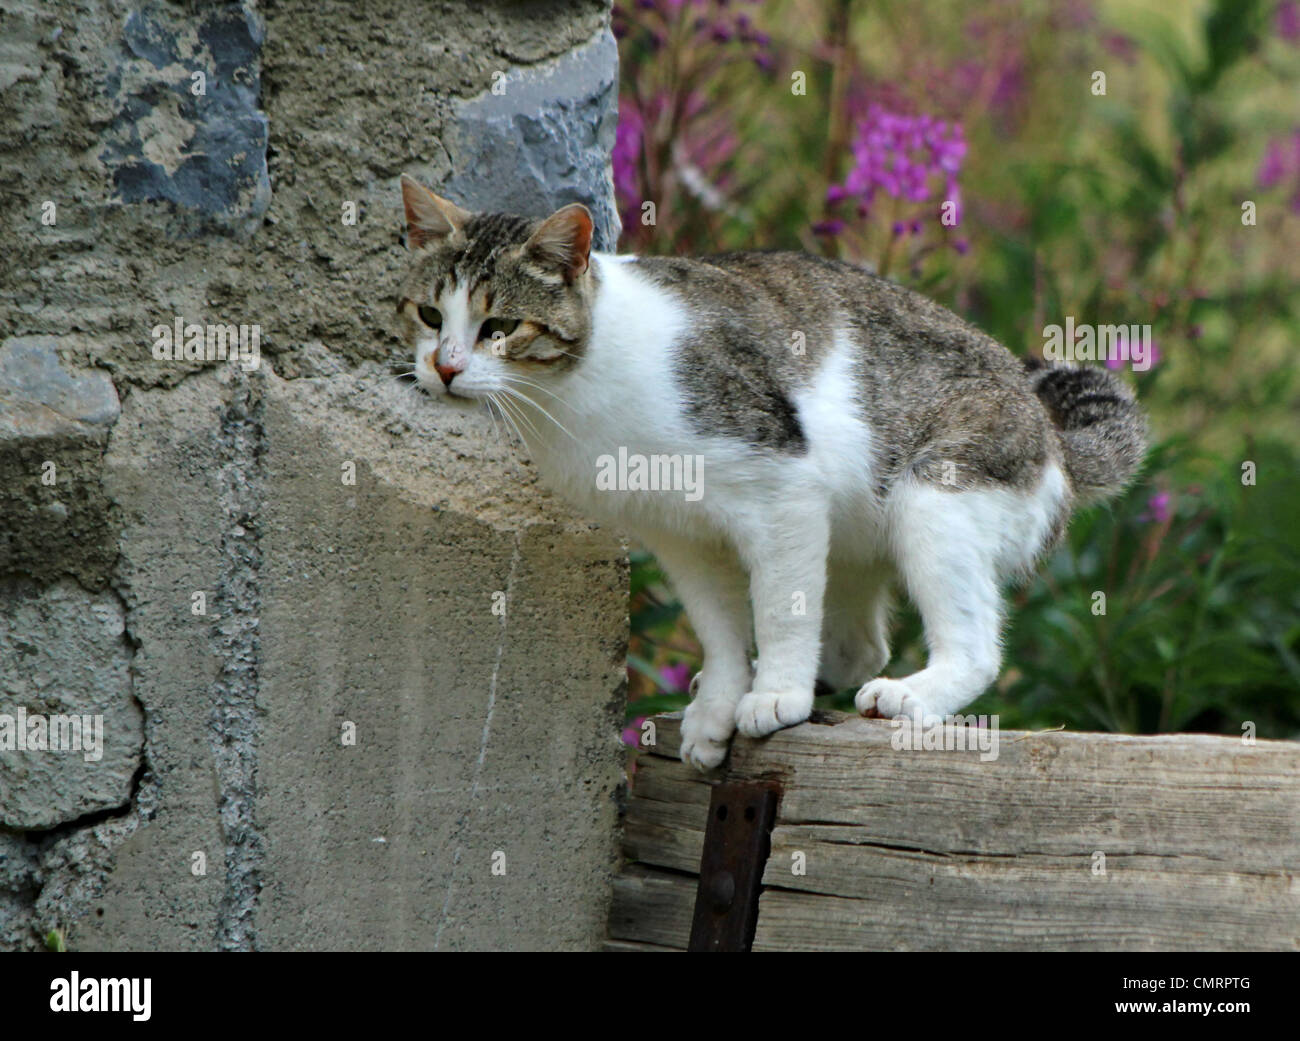 Cat Standing Wall Cat Stock Photos & Cat Standing Wall Cat Stock ...